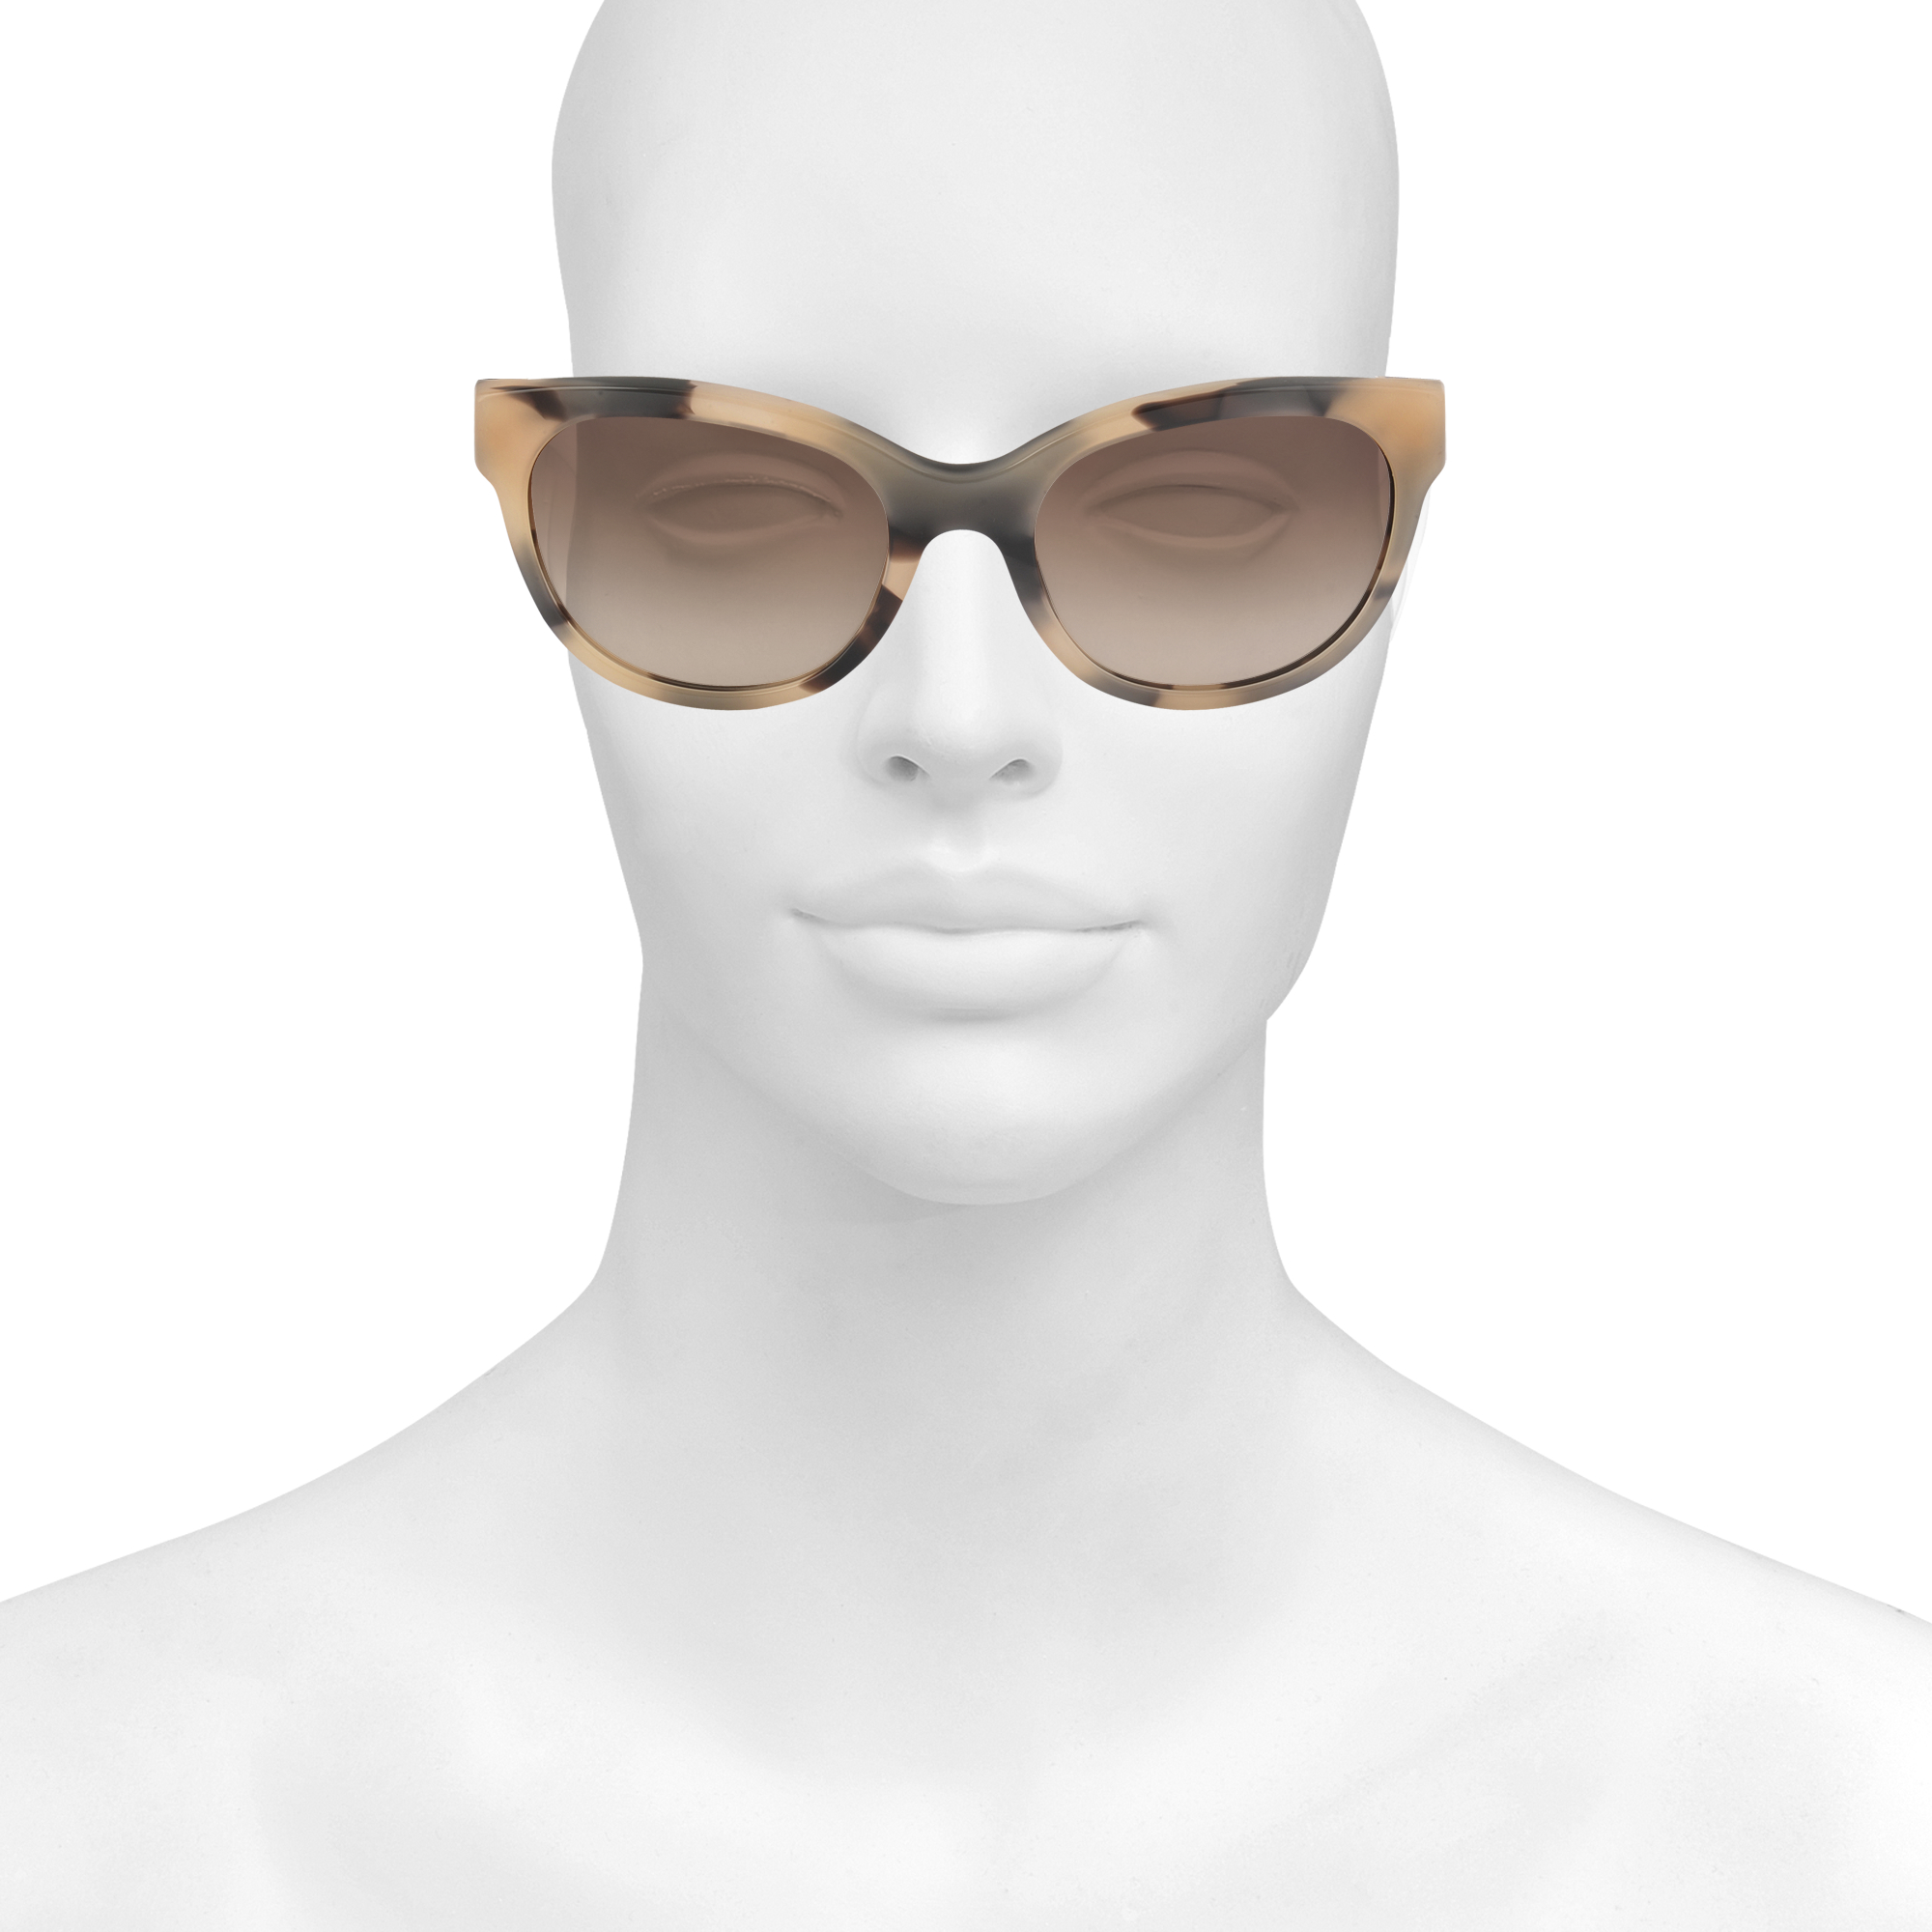 2d1011a959 Lyst - Burberry Trench 4187 Sunglasses